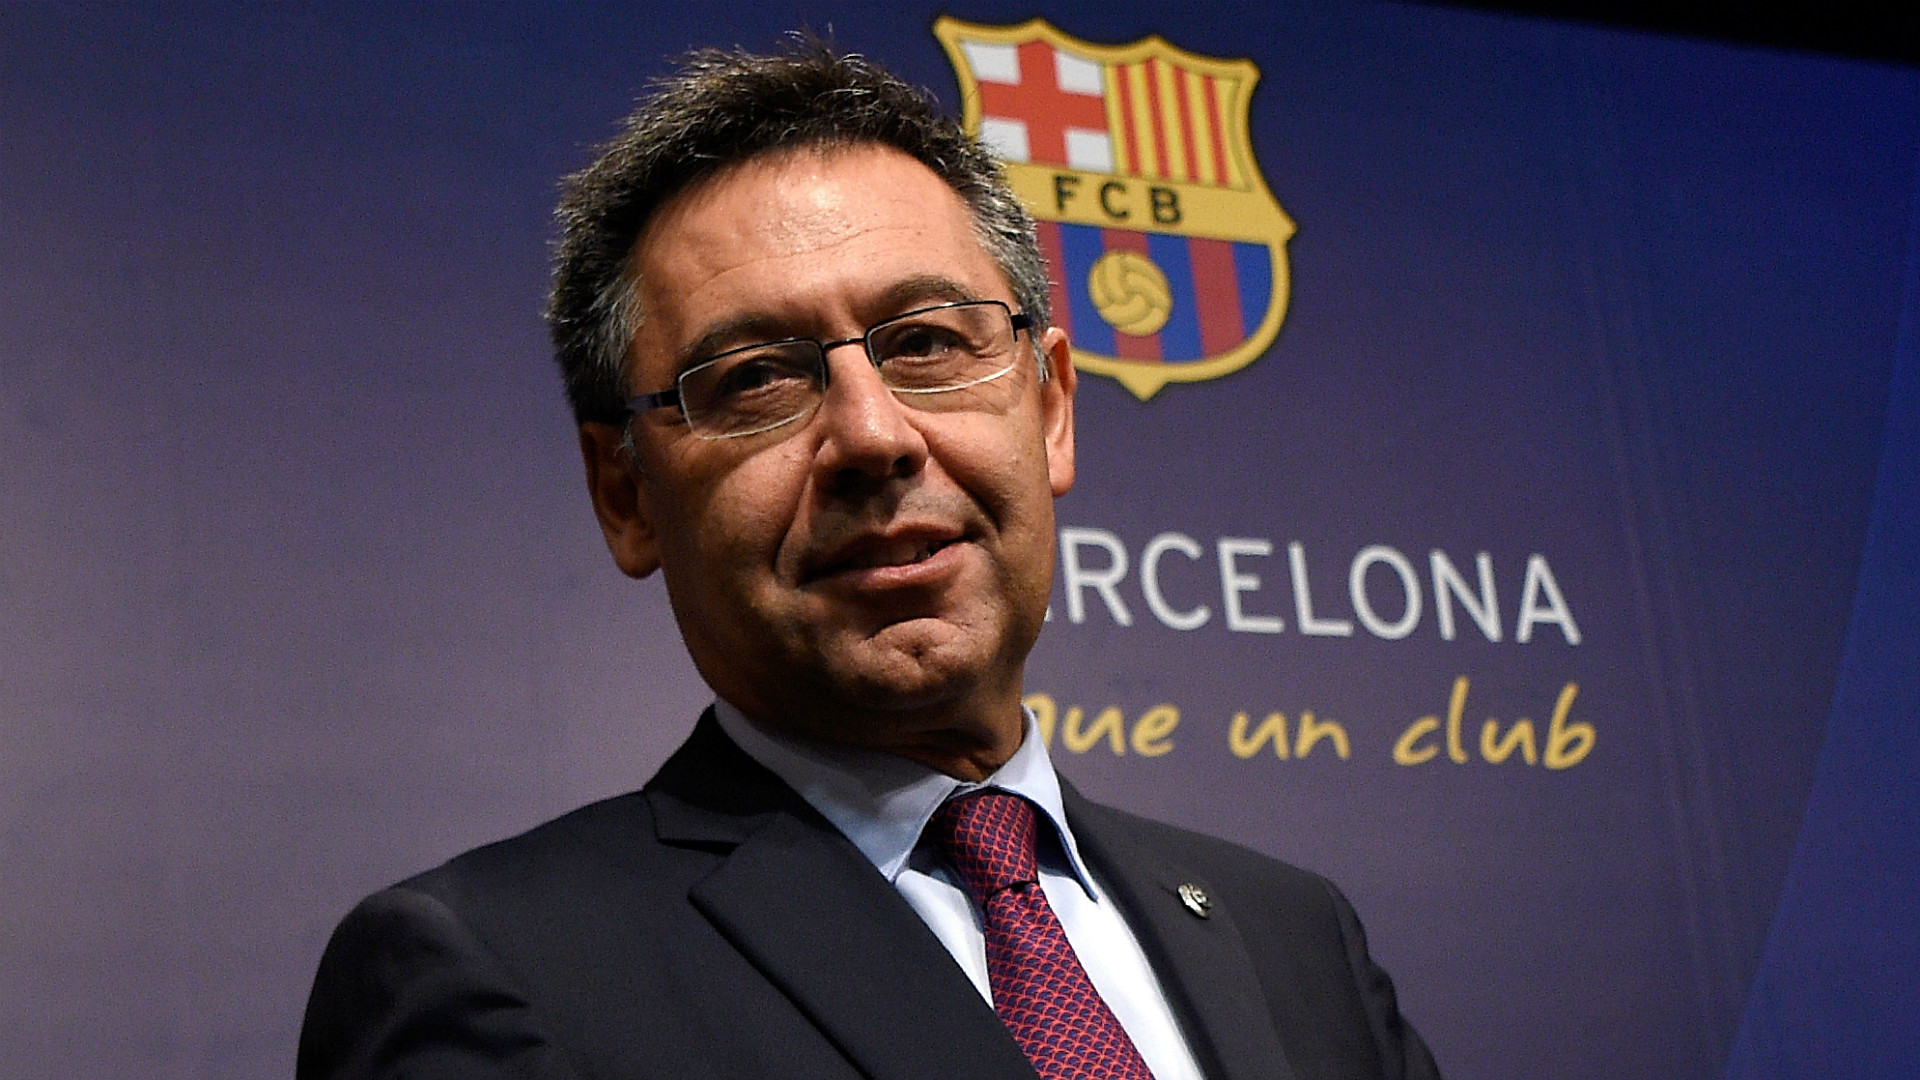 Bartomeu resigns as Barcelona president as entire board steps down |  Goal.com